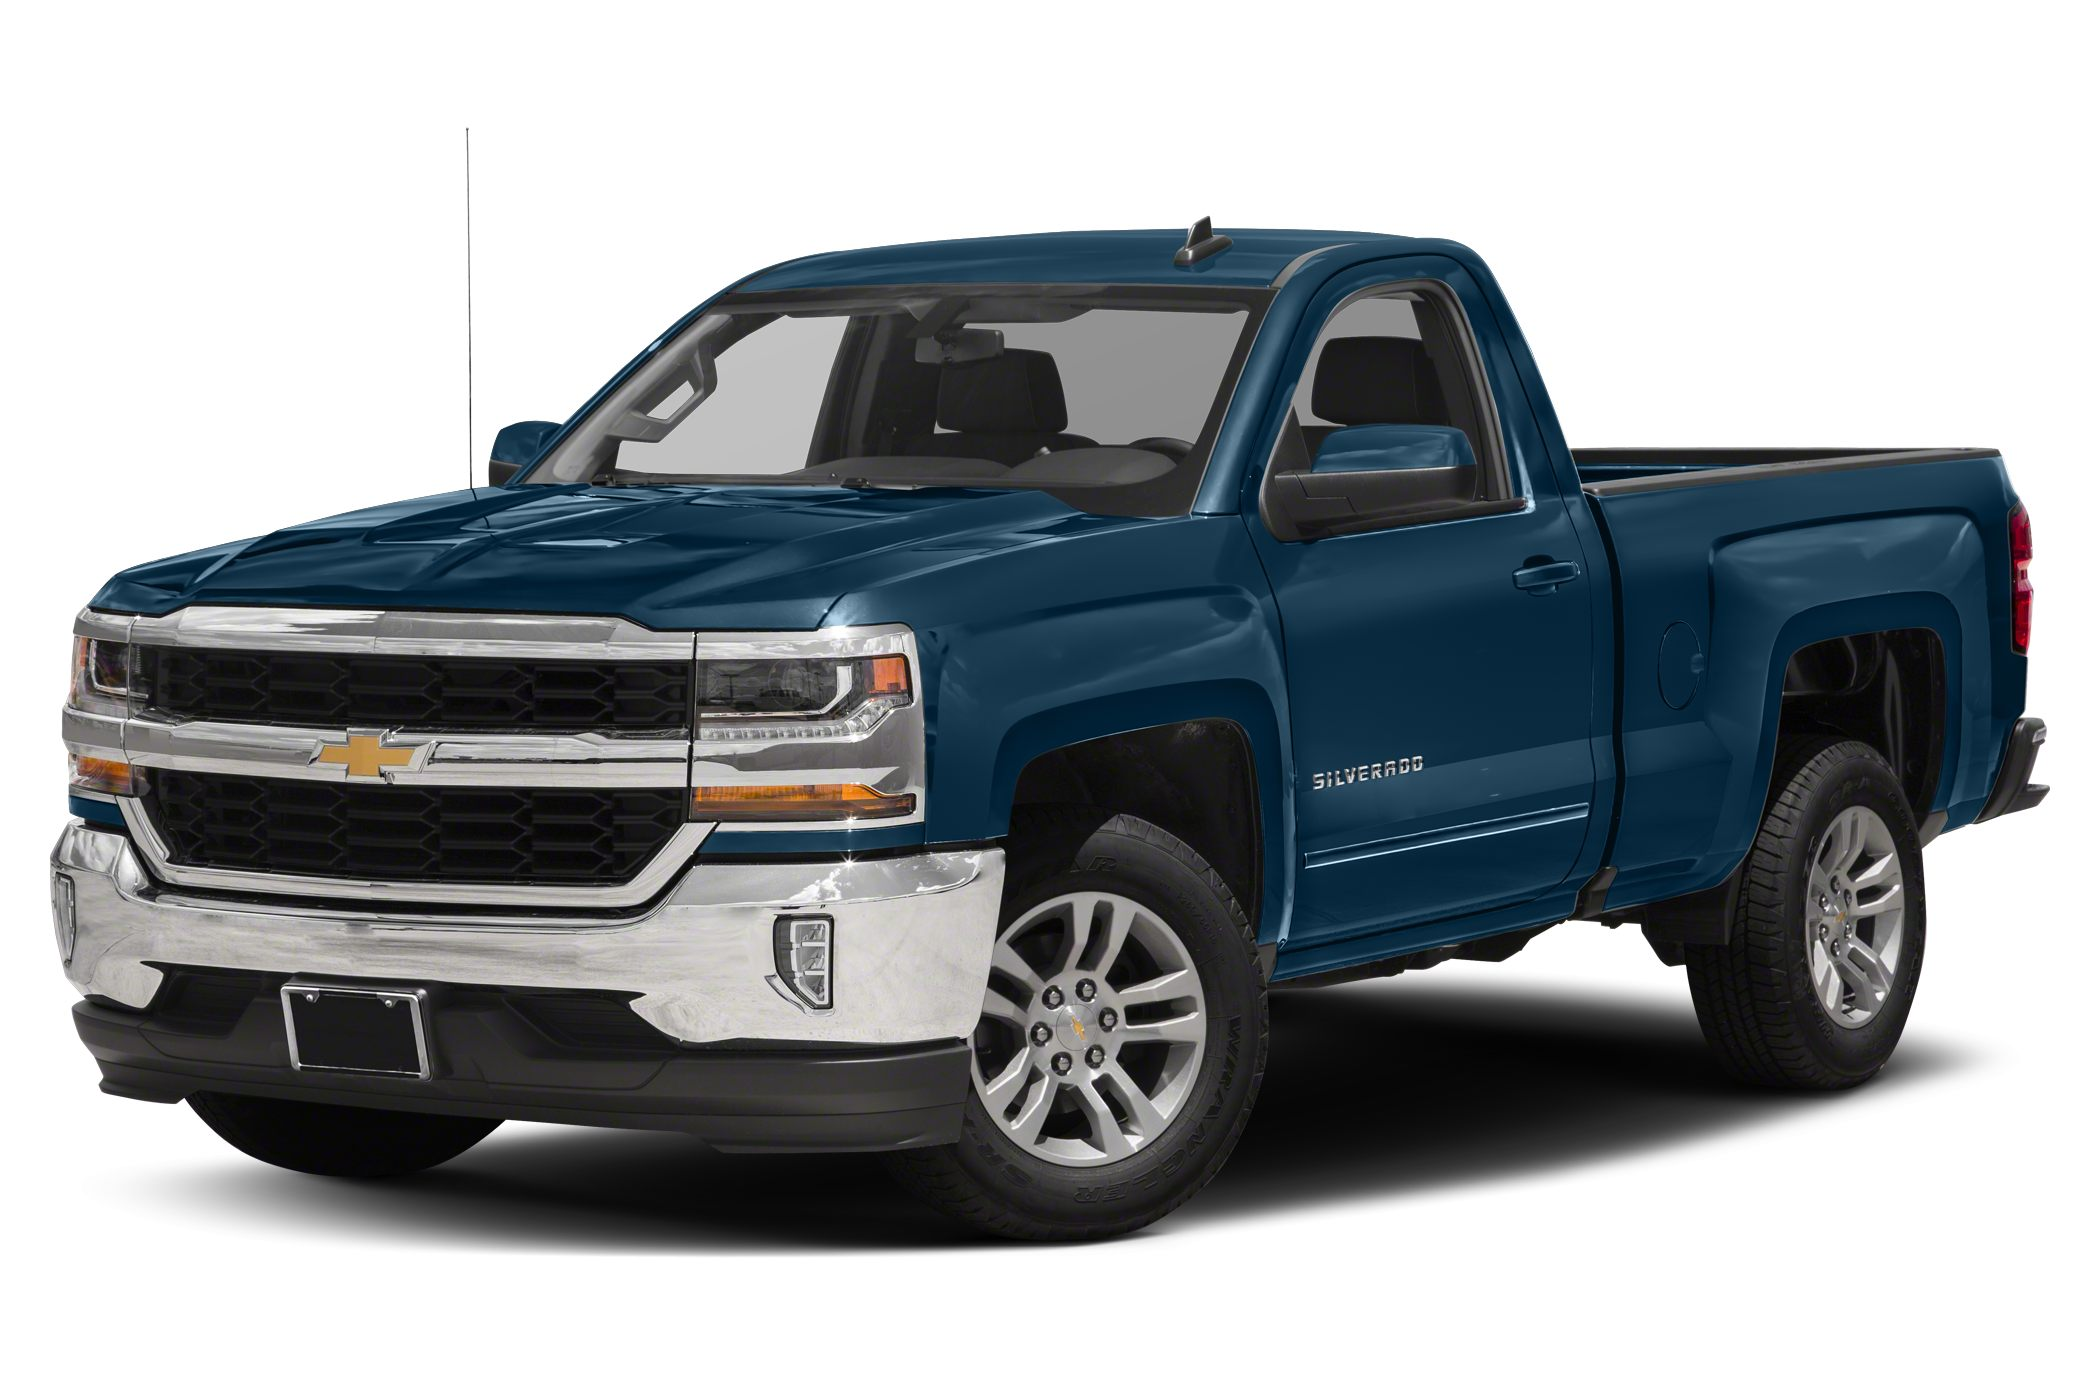 2017 Chevrolet Silverado 1500 Lt W 2lt 4x4 Regular Cab 8 Ft Box 133 In Wb Pictures